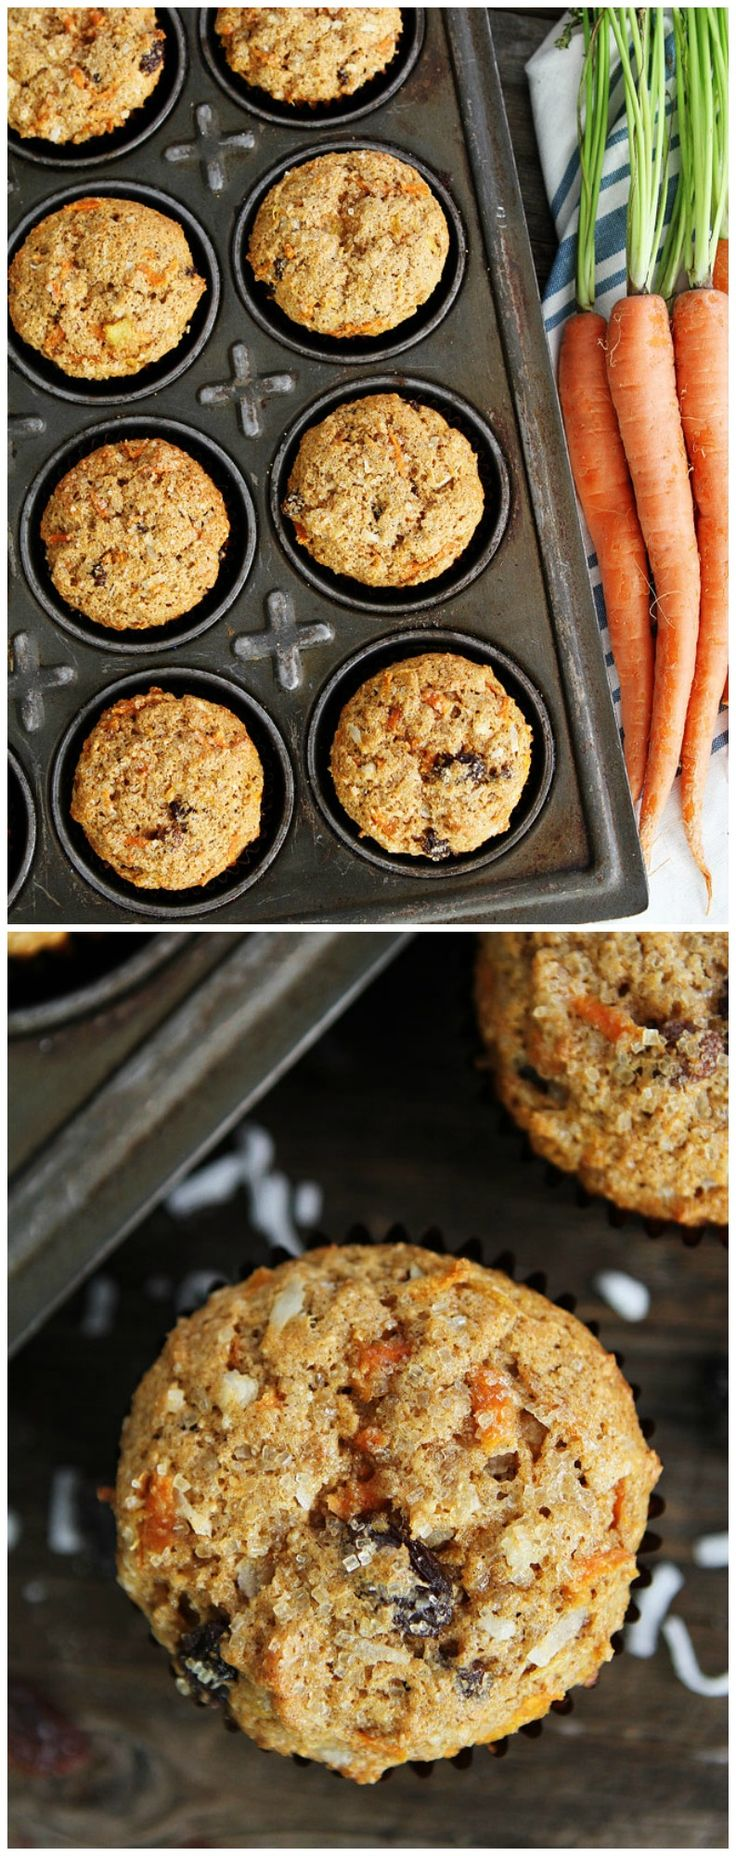 Morning Glory Muffin Recipe on twopeasandtheirpod.com  We love these healthy and delicious muffins! The perfect way to say good morning!